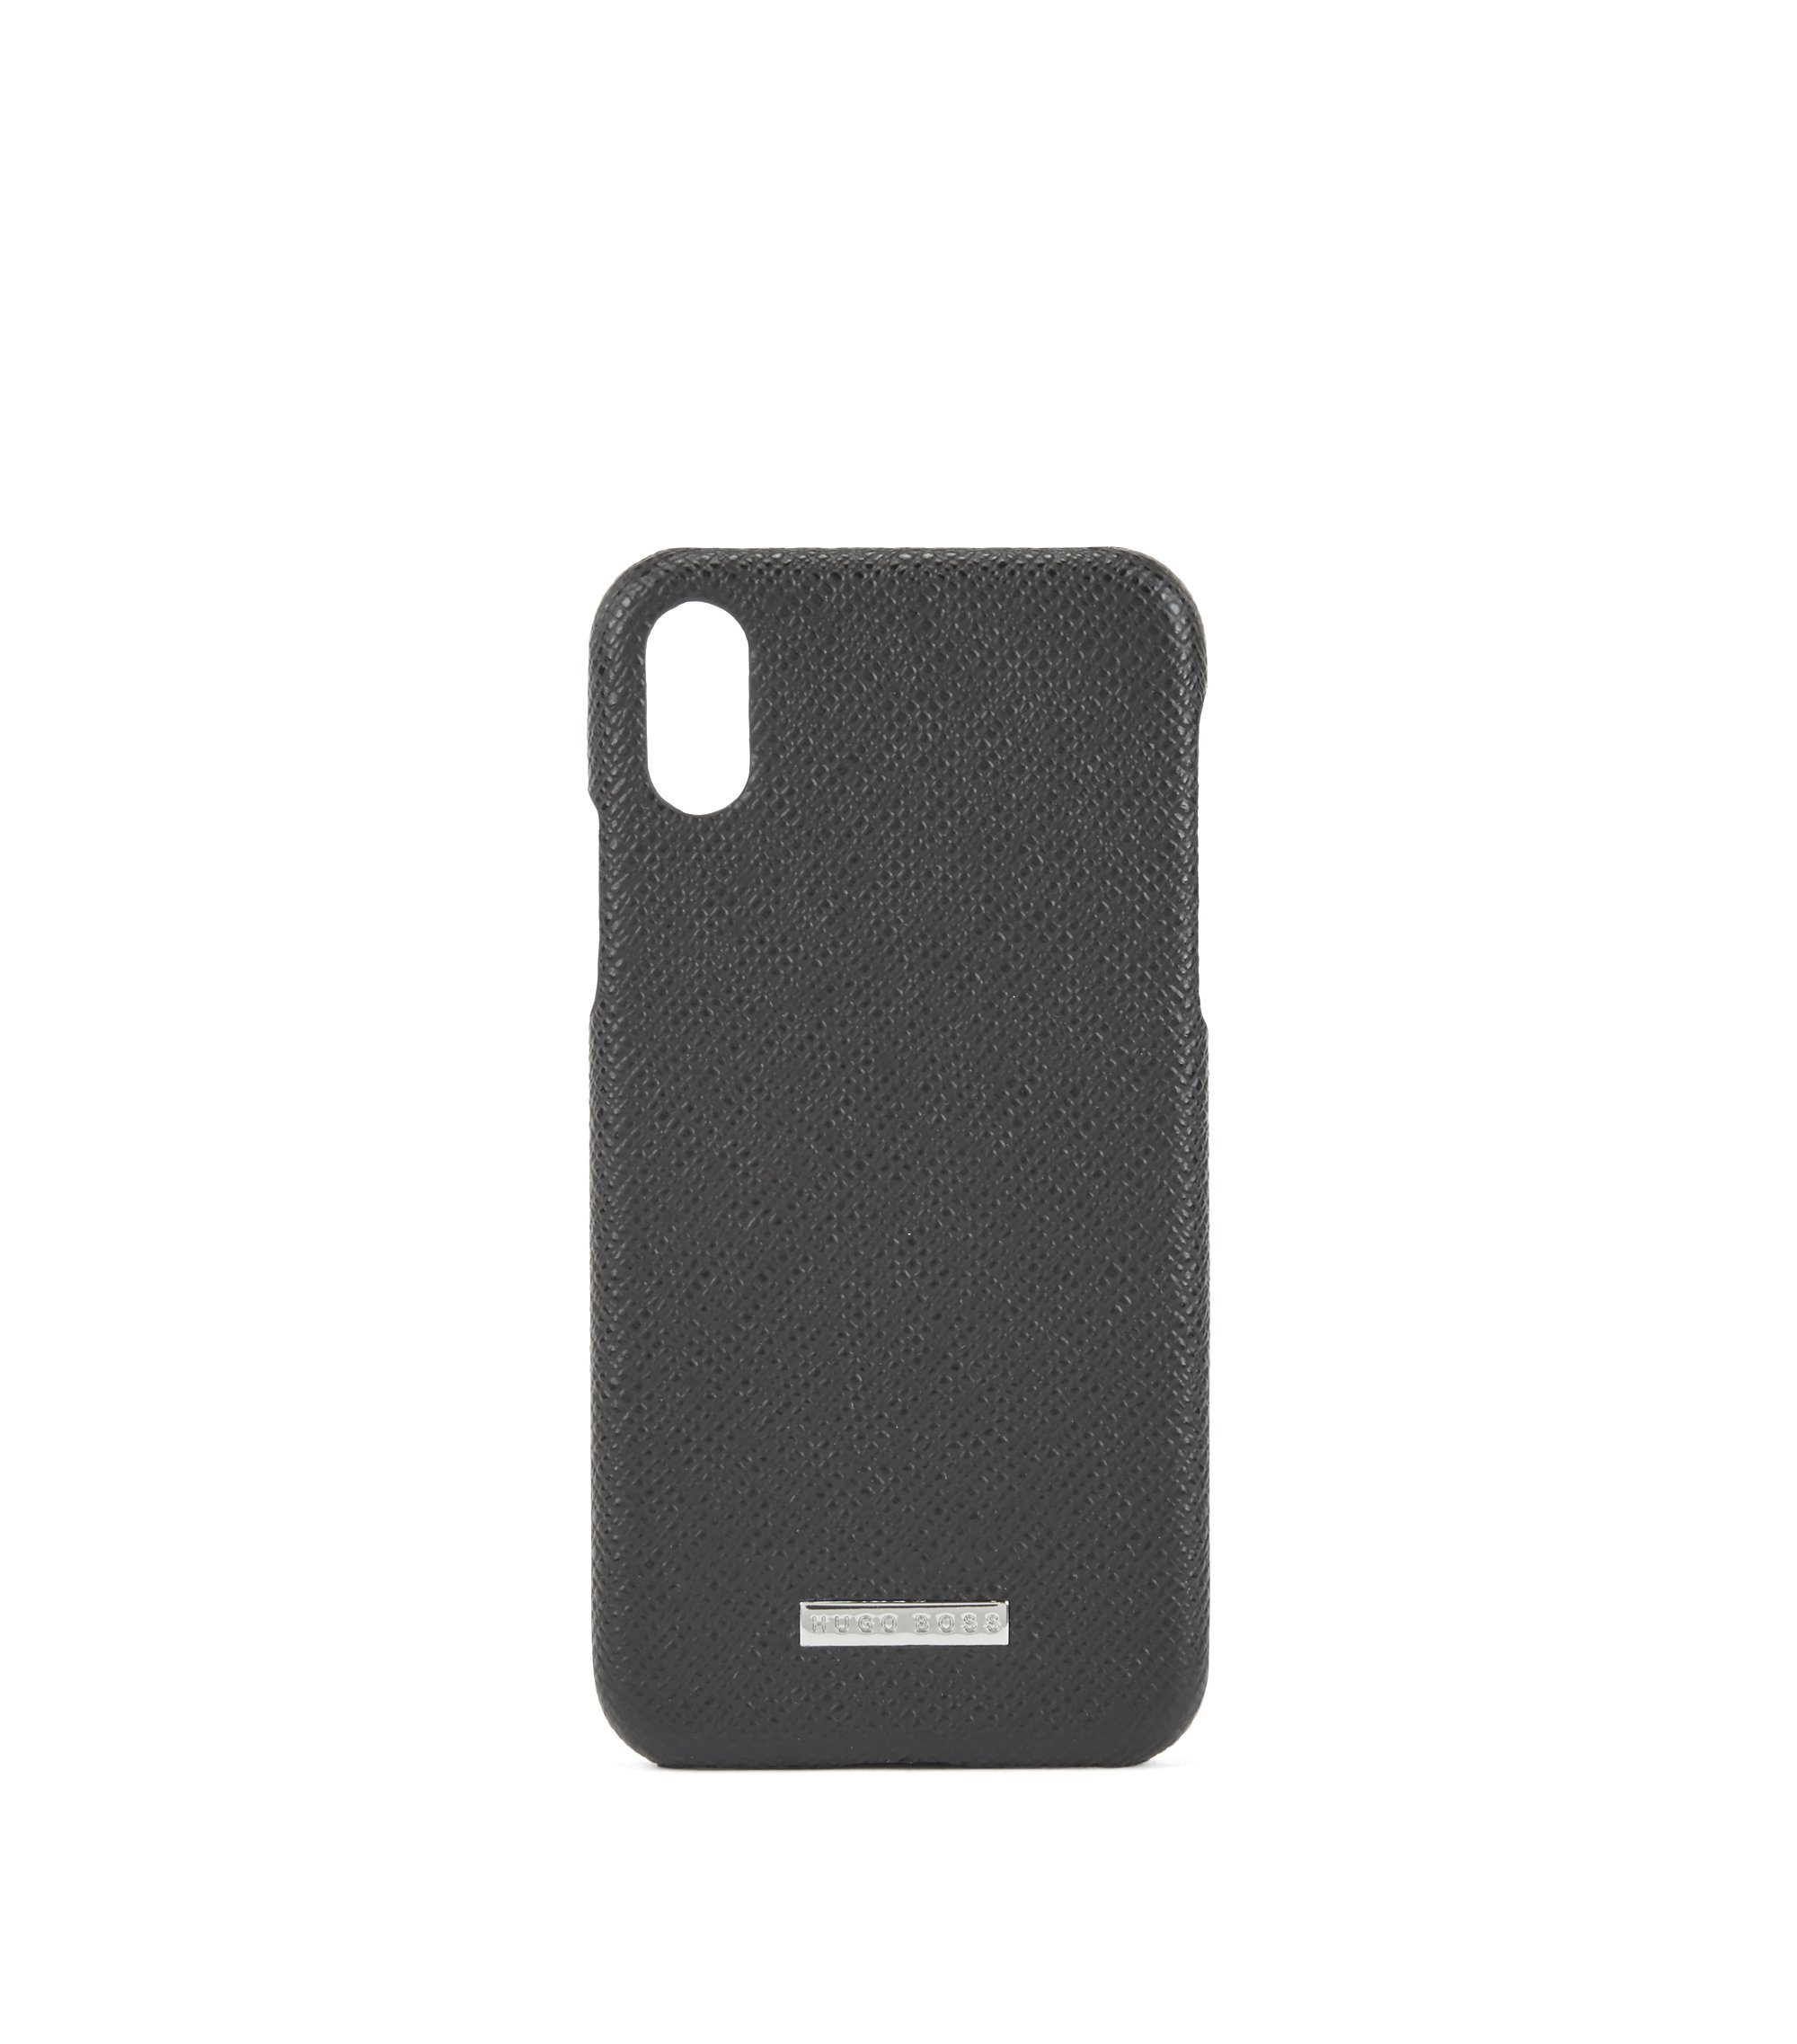 Signature Collection iPhone X case in Italian calf leather, Black